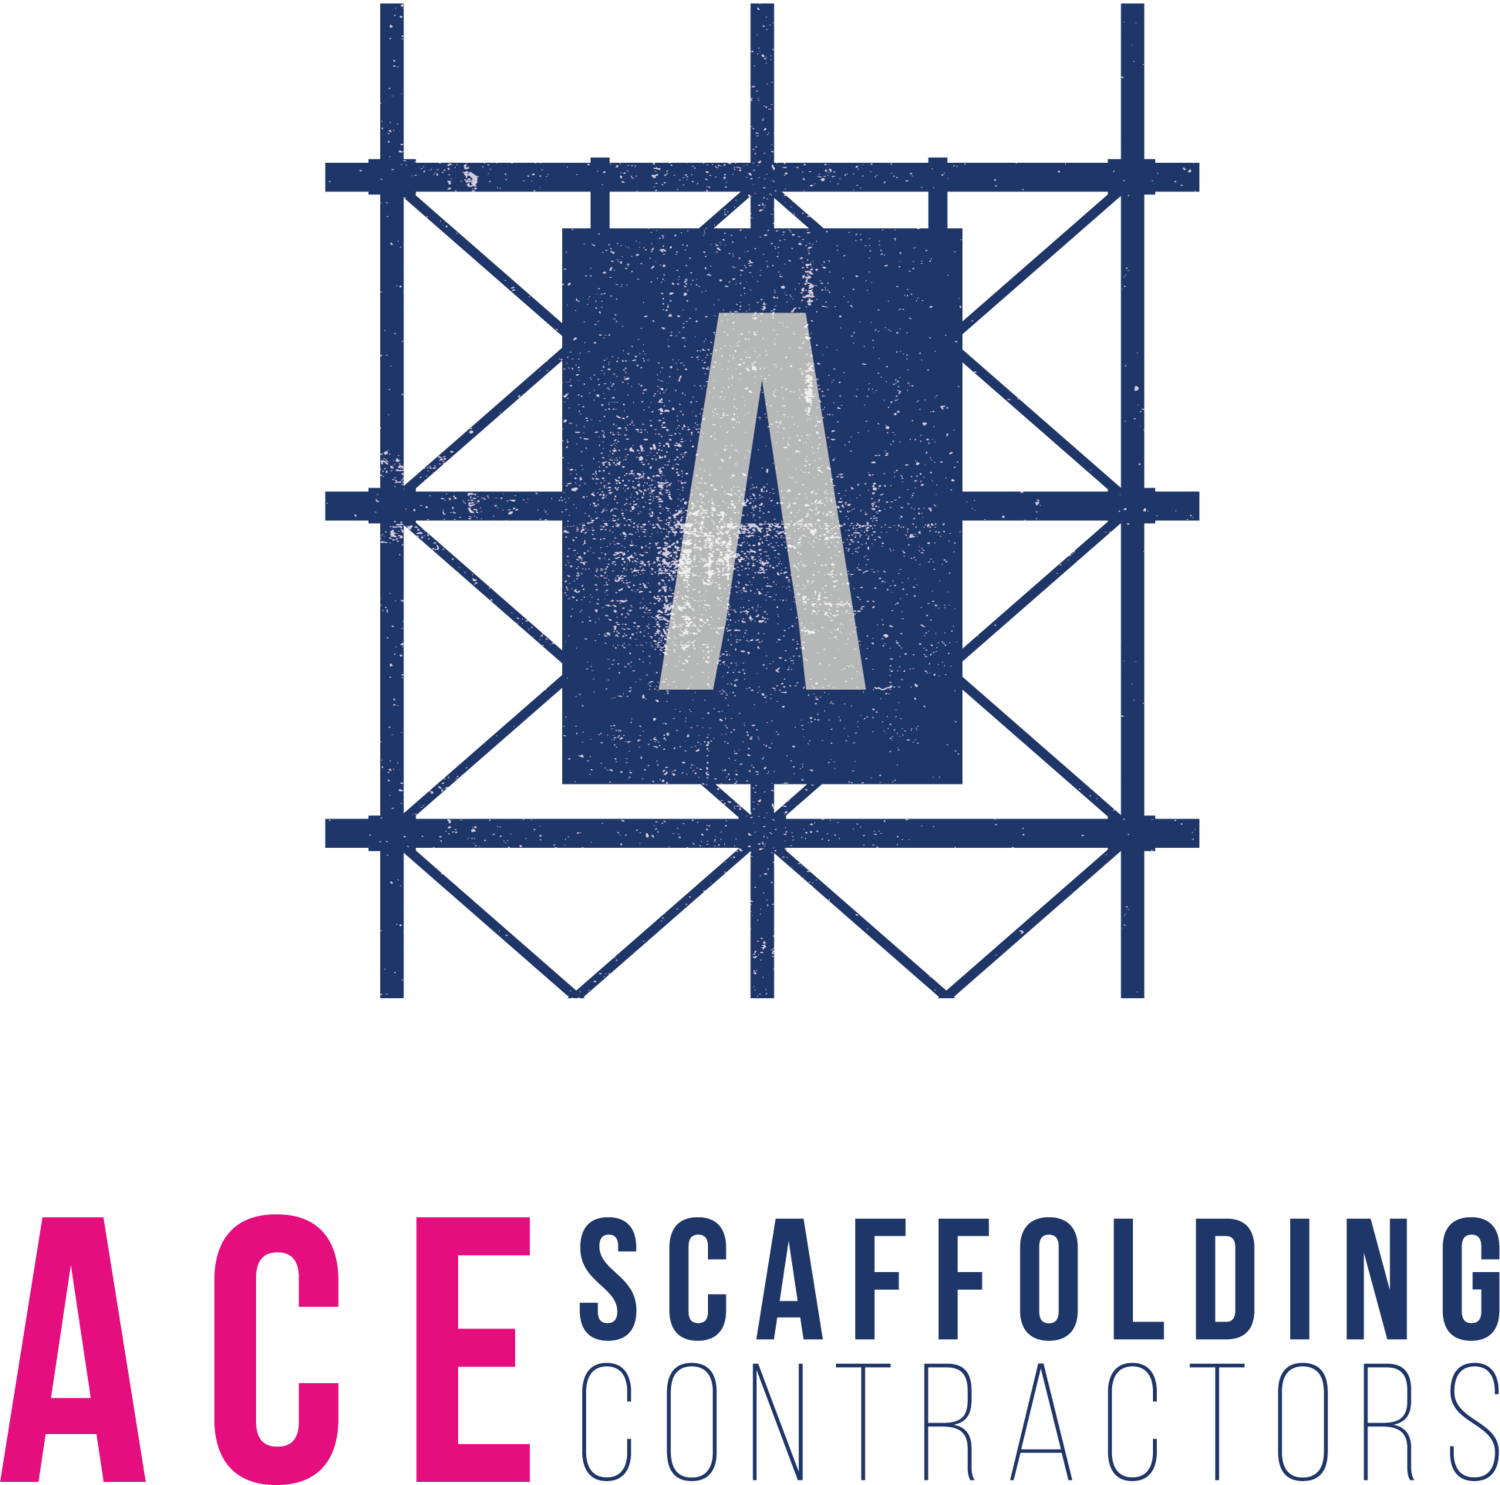 Ace Scaffolding Contractors